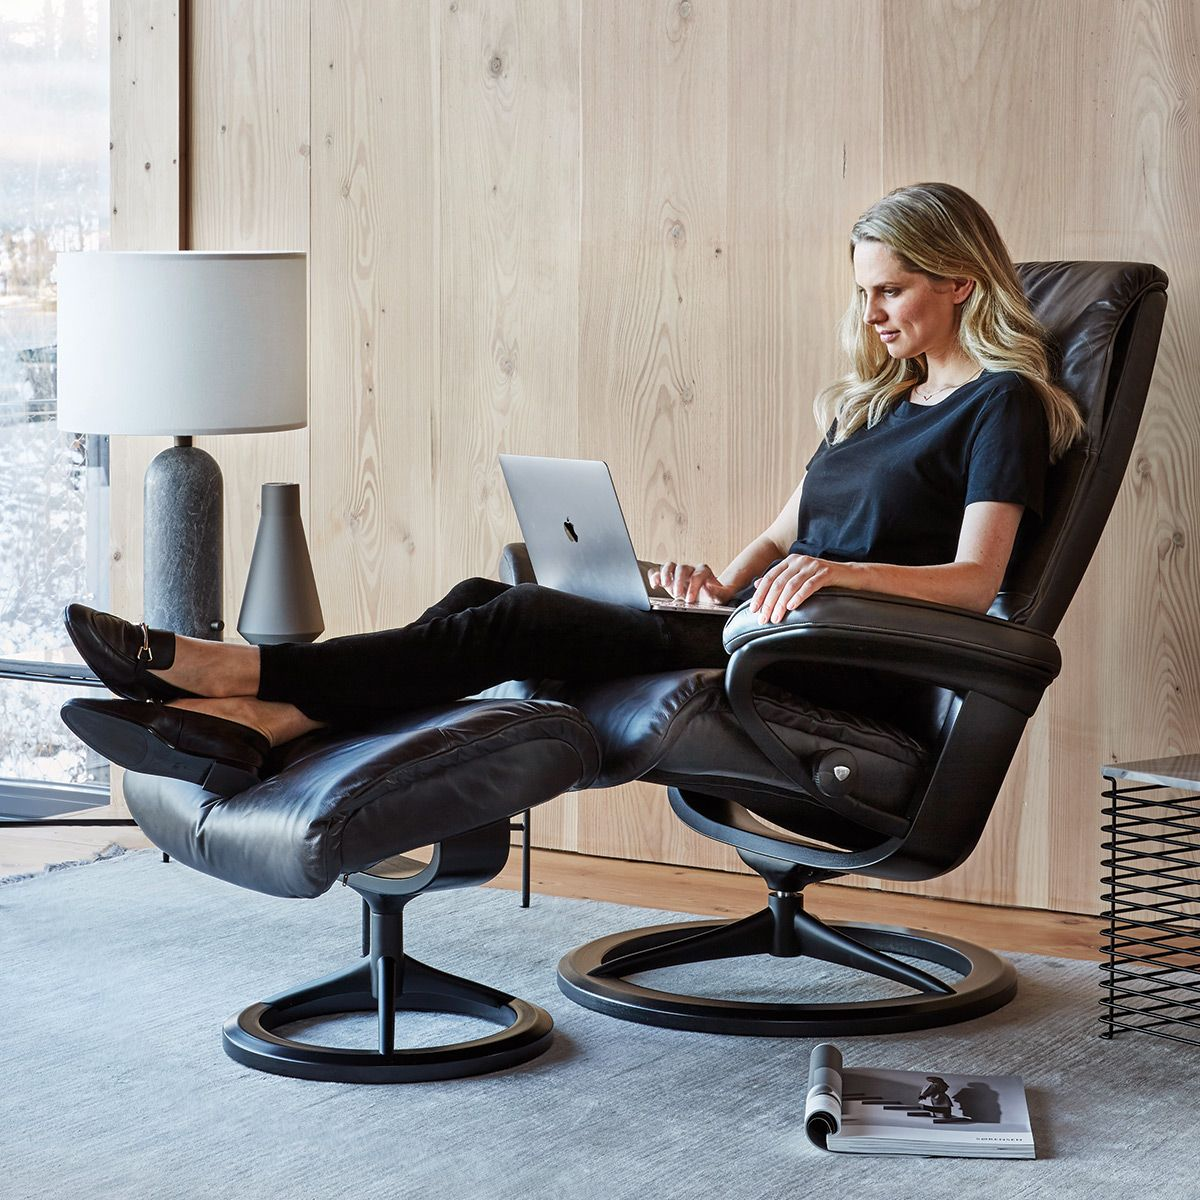 The Benefits Of Working From Home 1 Stressless Comfort 2